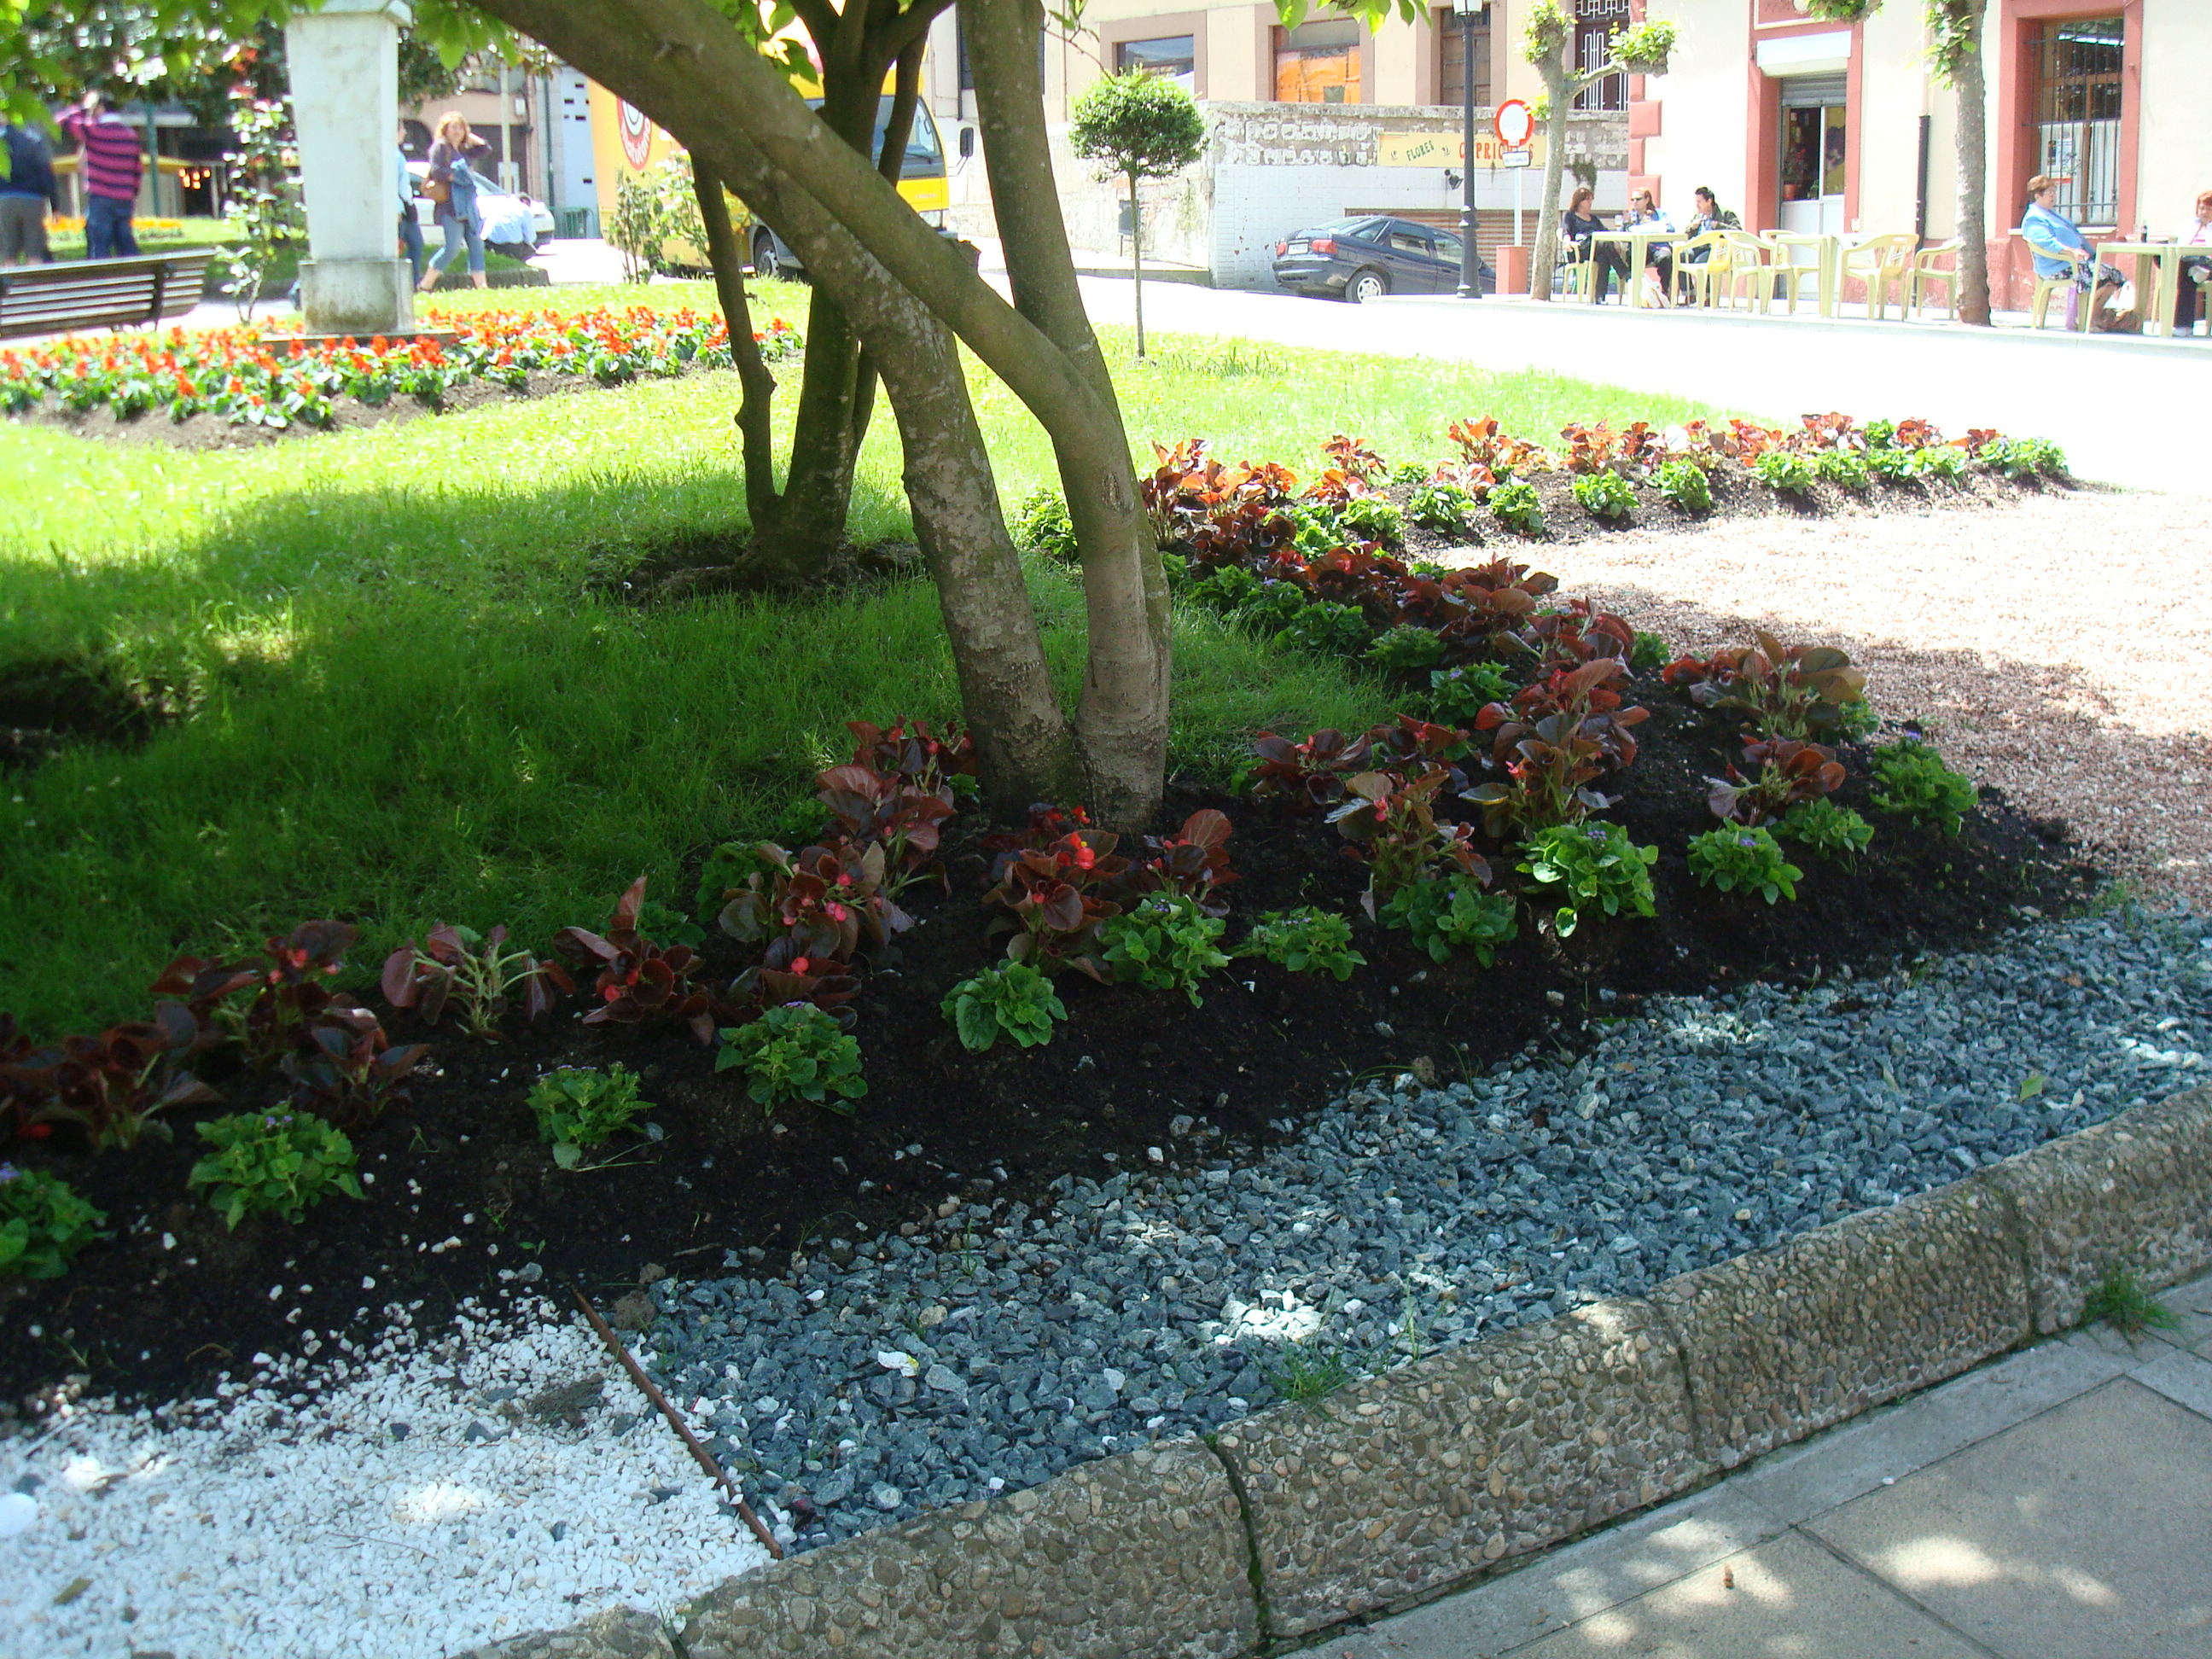 Parques y jardines asturias forestal for Decoracion parques y jardines